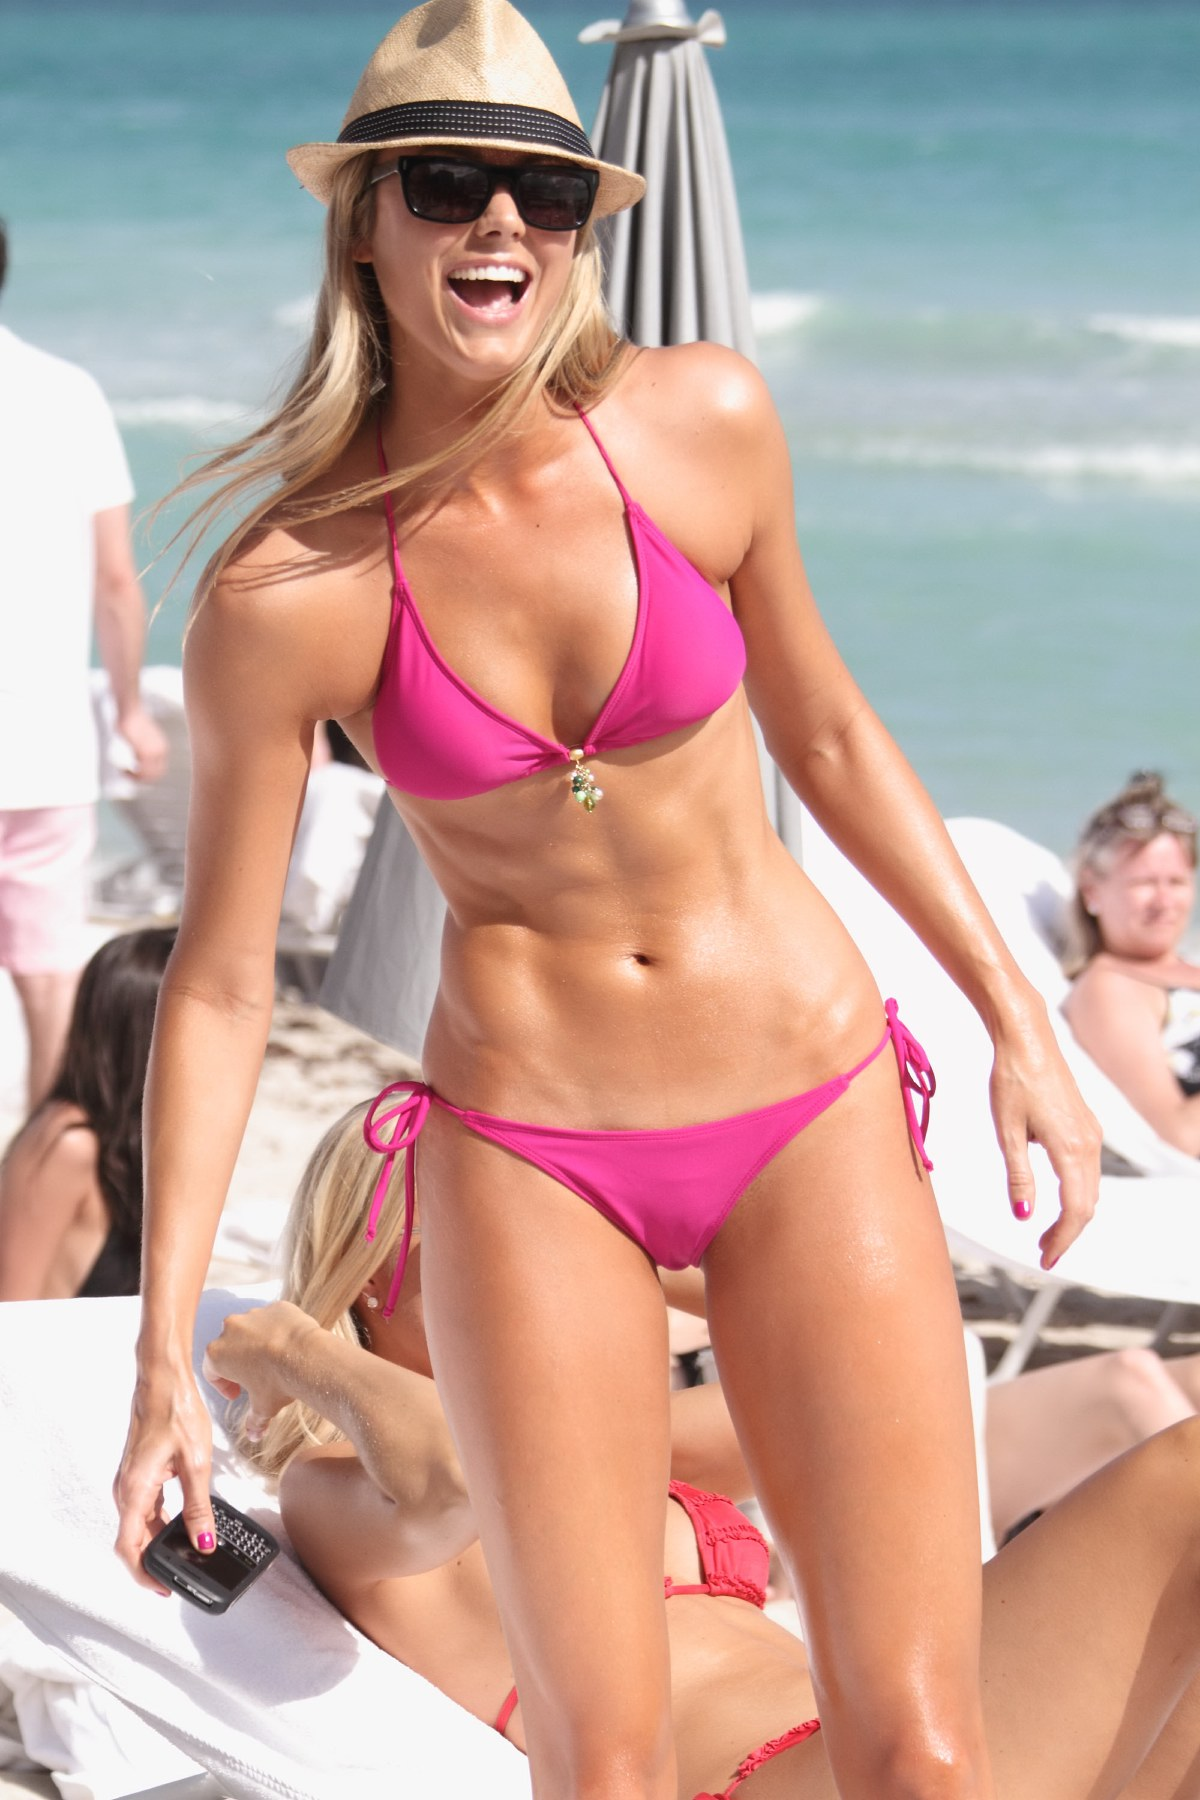 Any Stacy keibler beach nude consider, that